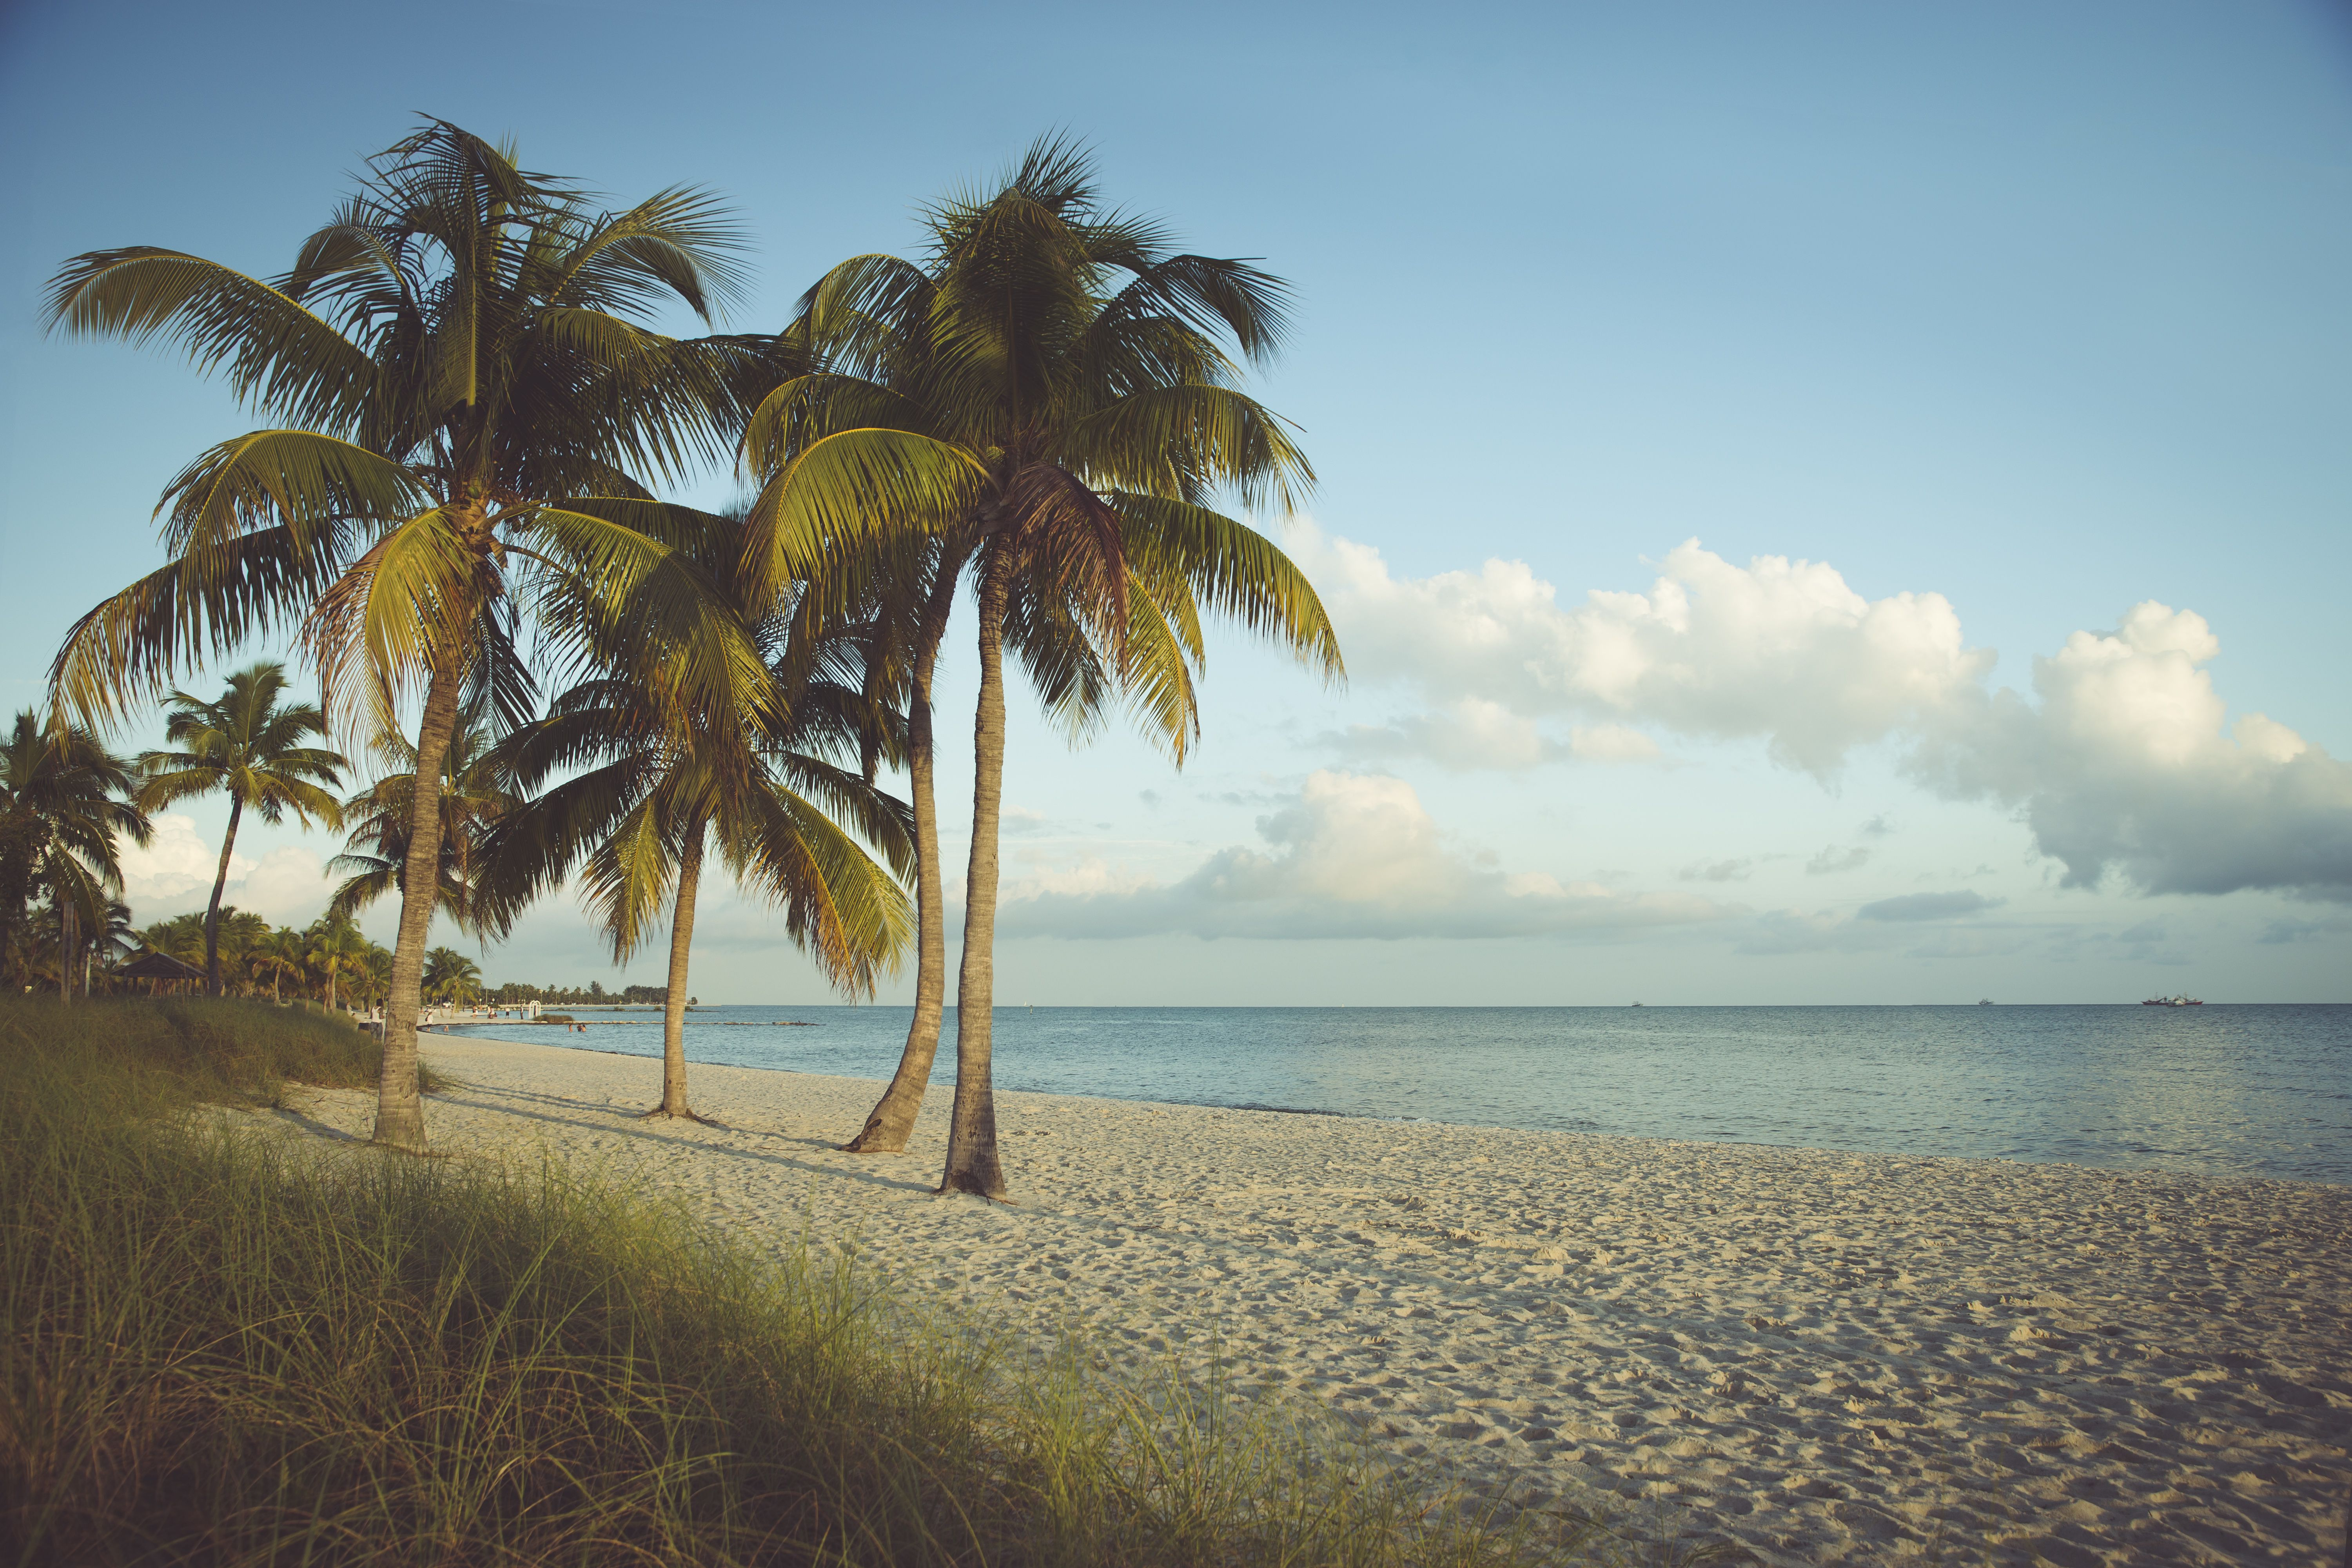 Checking Accounts In West Palm Beach